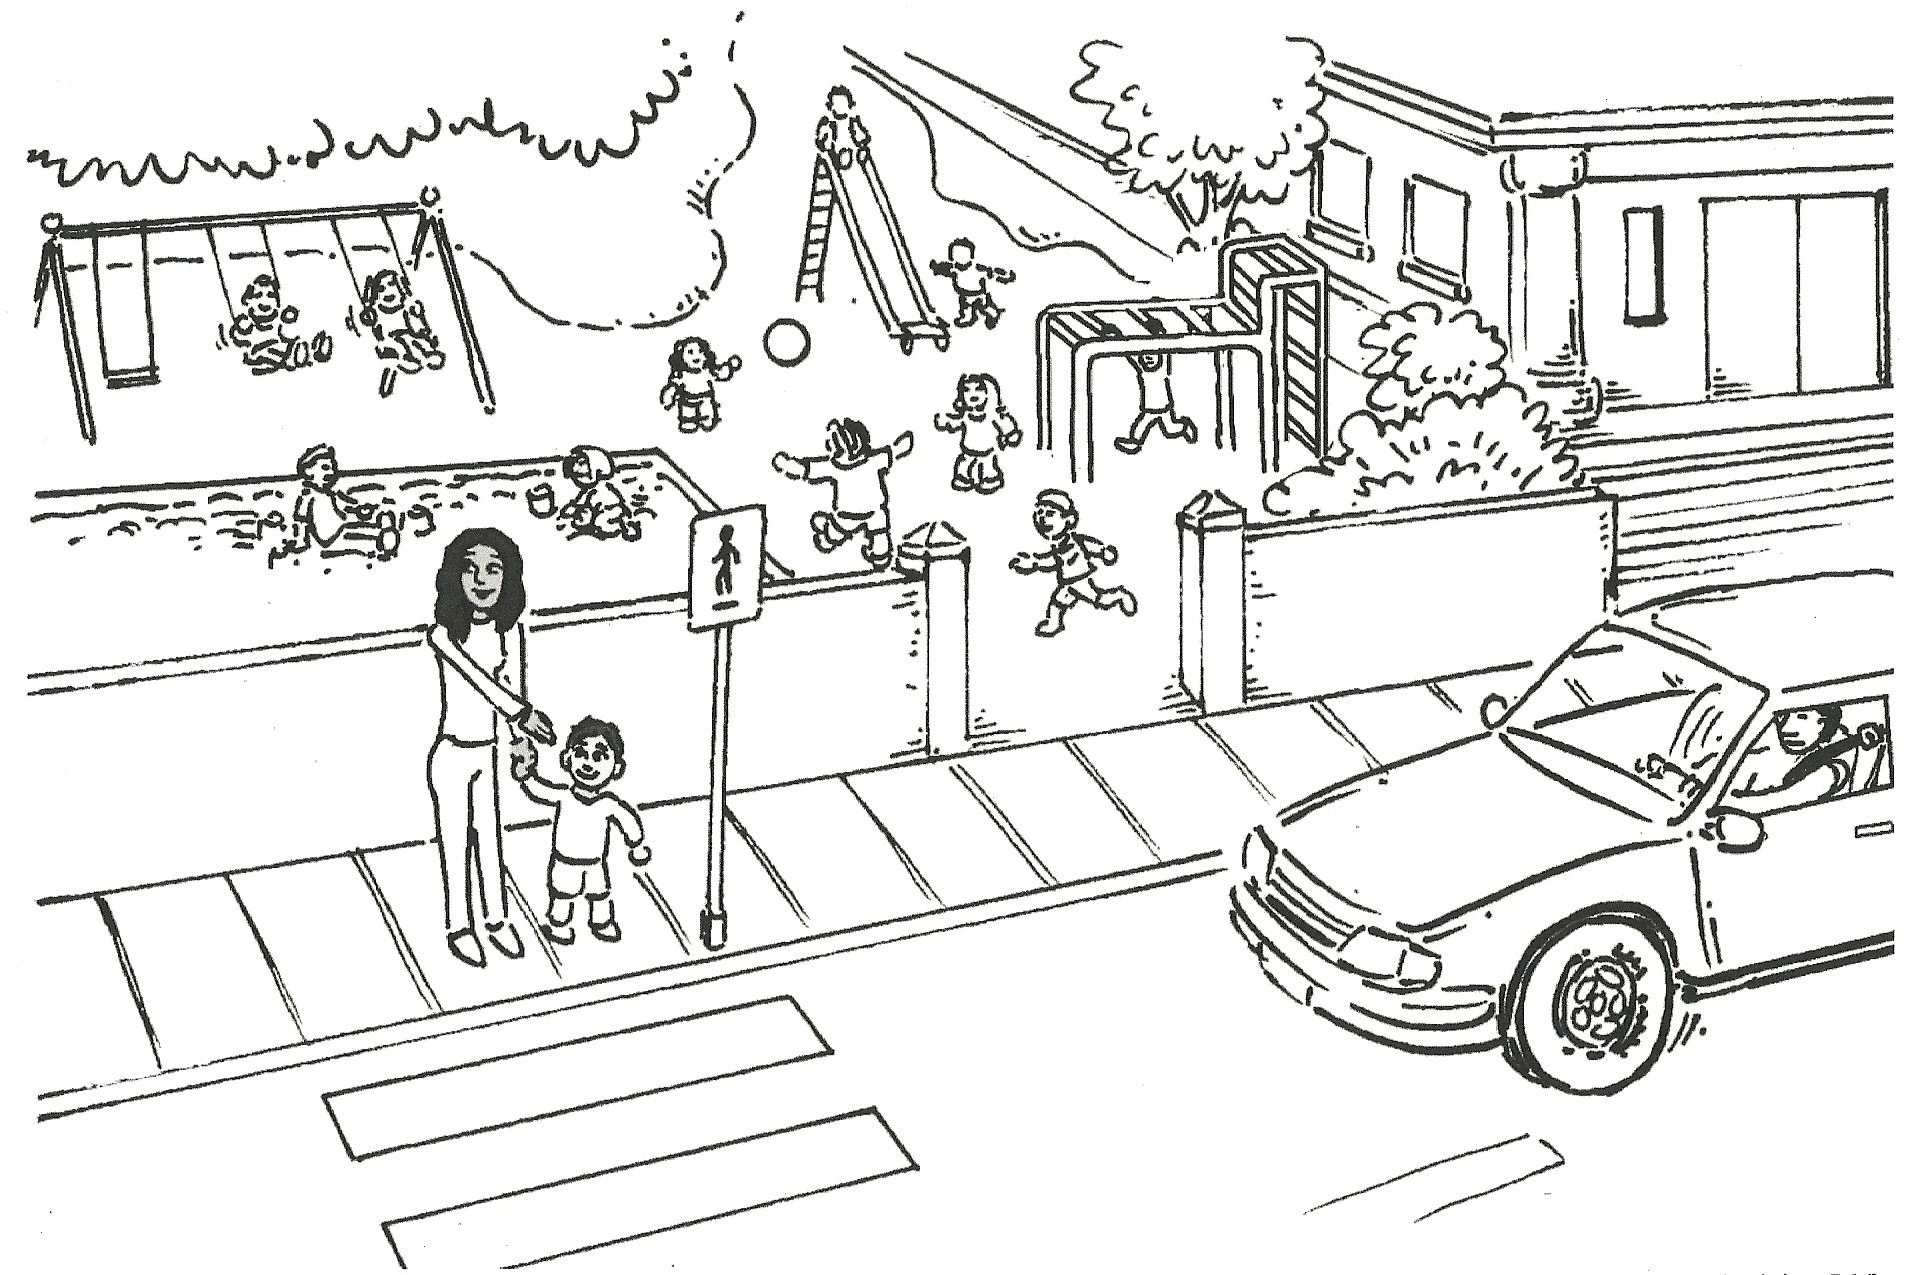 safety signs coloring pages Collection-Road Safety Coloring Pages Road Sign Coloring Awesome Road Safety Coloring Pages 1-m